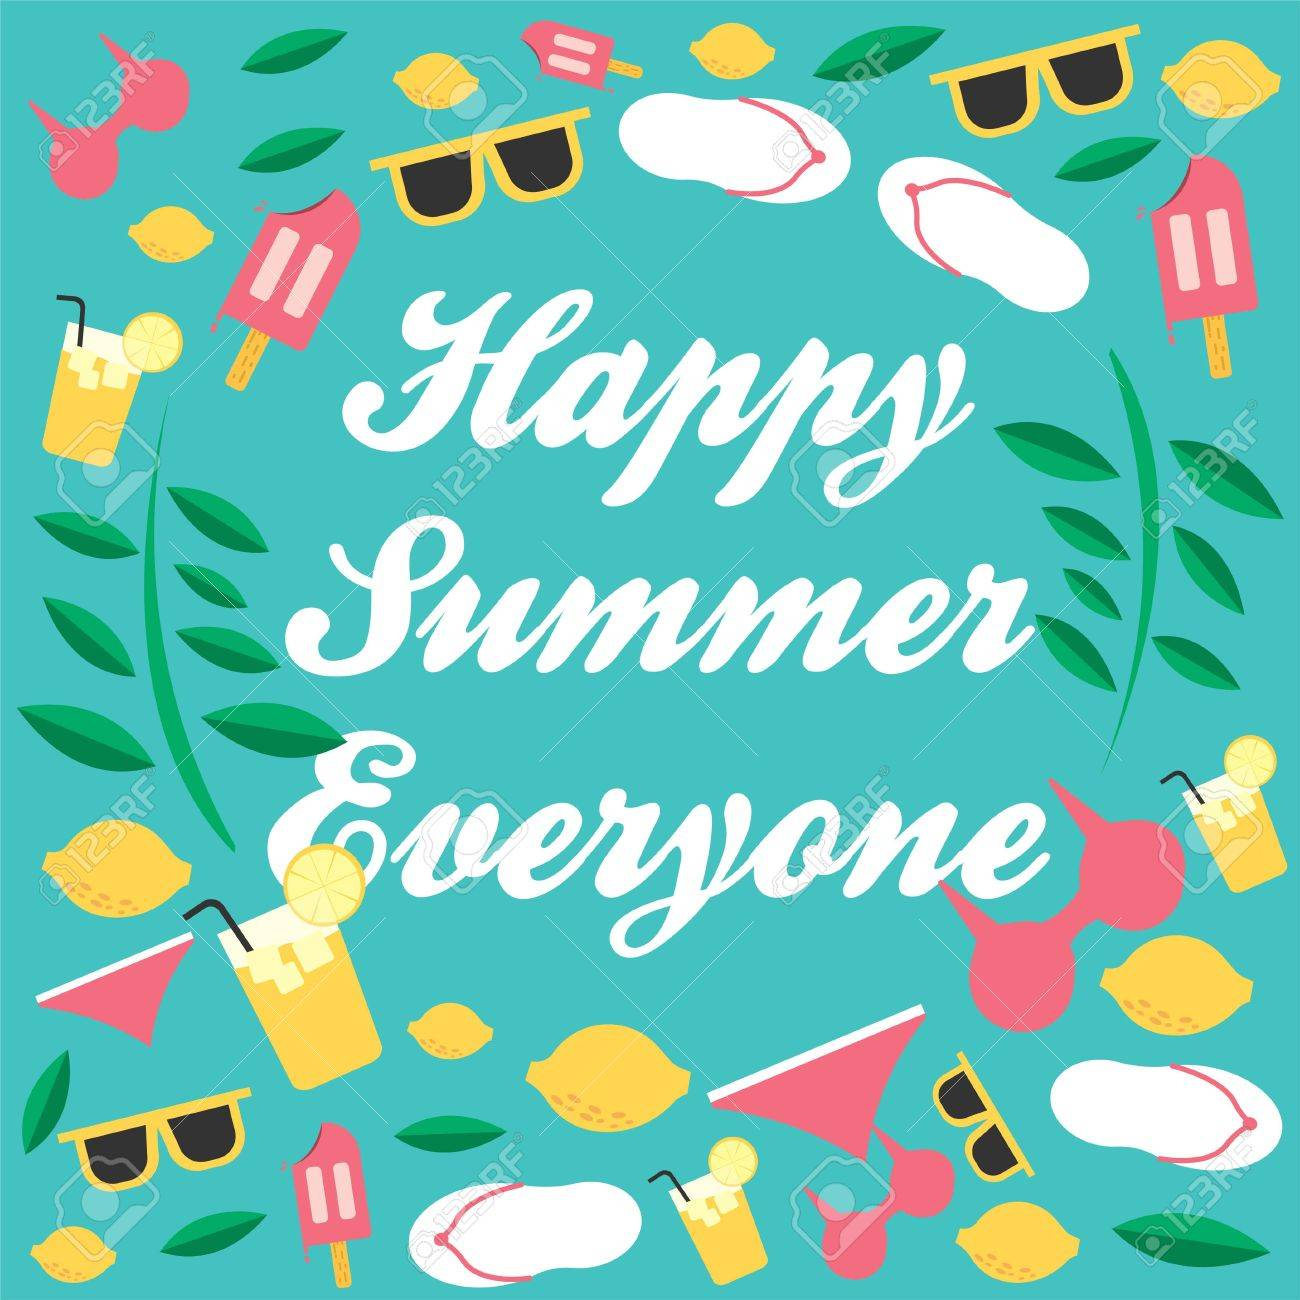 happy summer everyone this summer time time for enjoy your